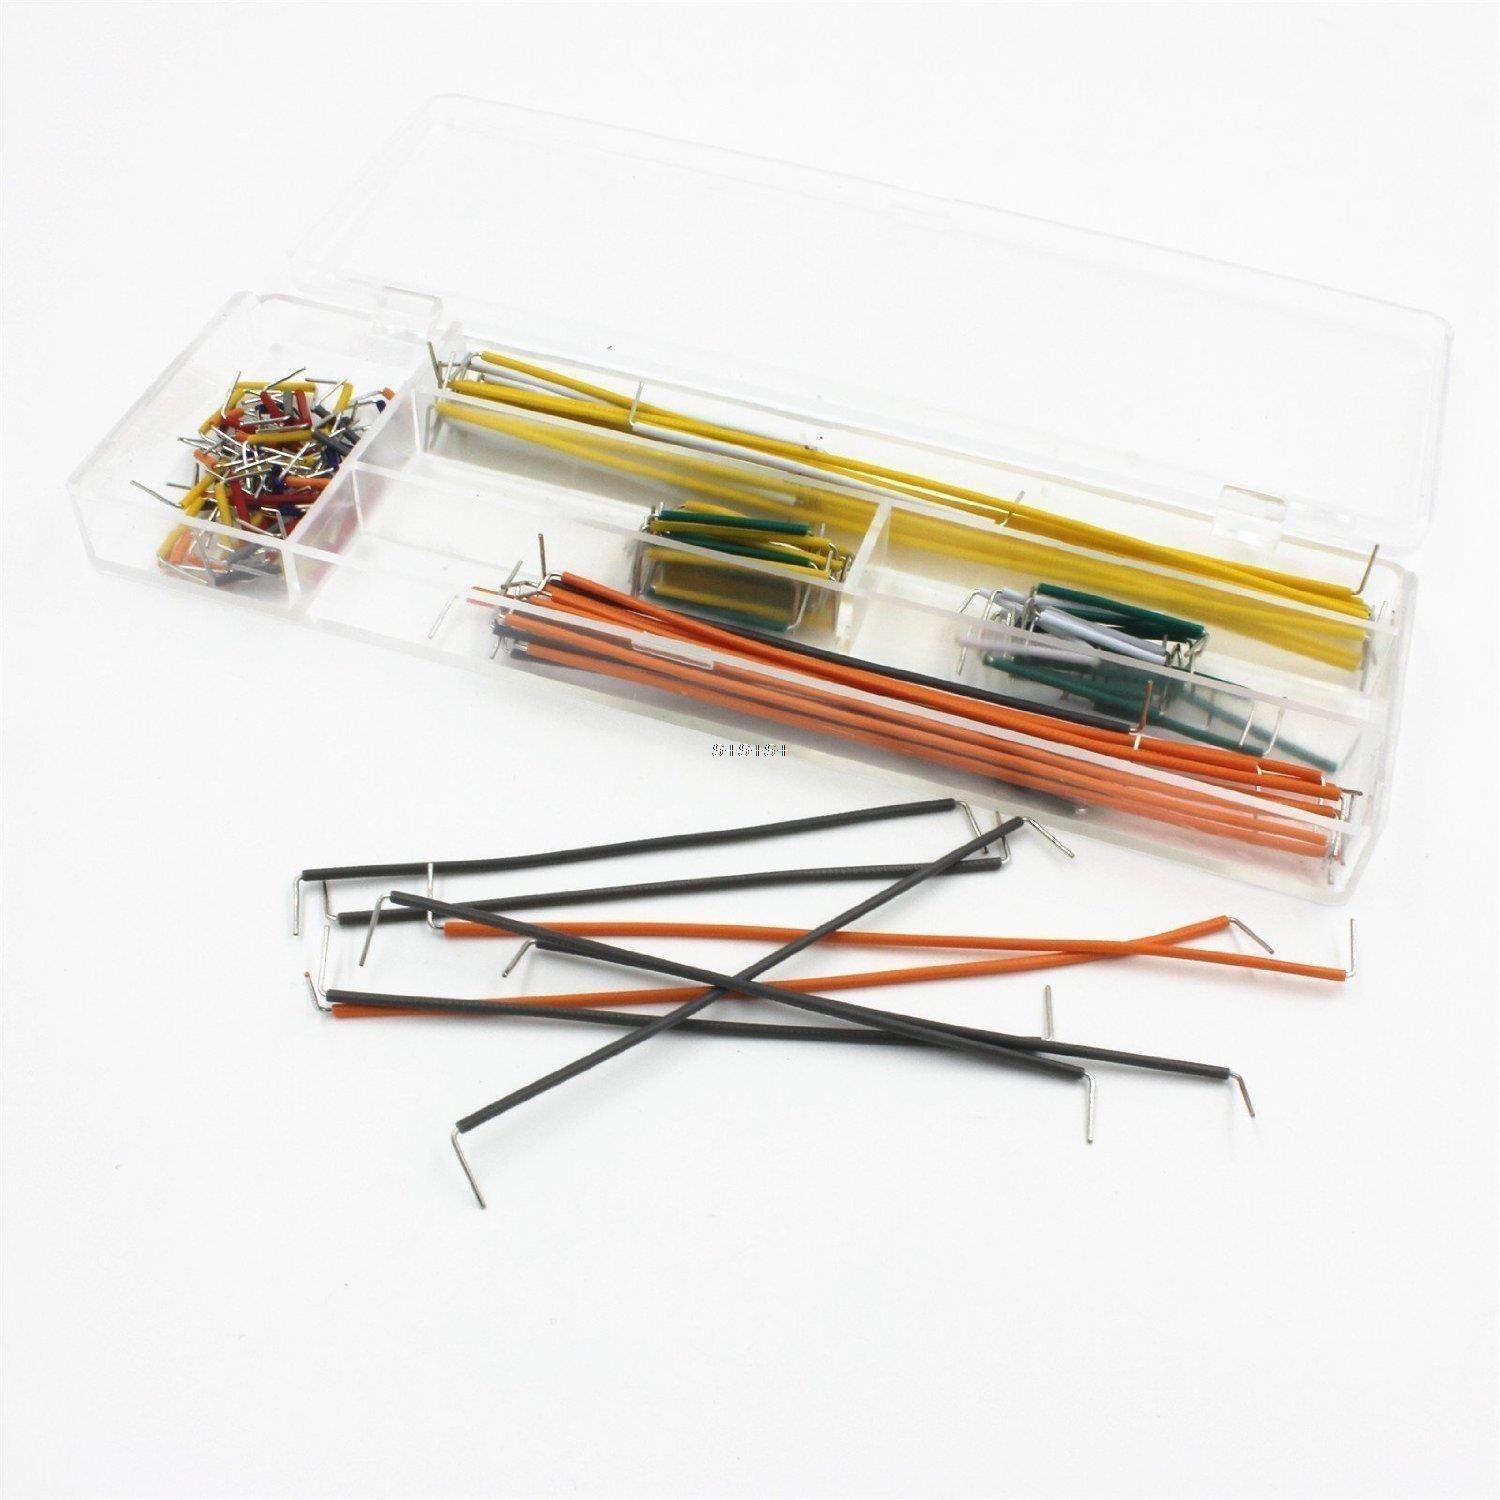 140 Pcs U Shape Solderless Breadboard Jumper Cable Wire Kit Robu Wiring Cables Hover To Zoom